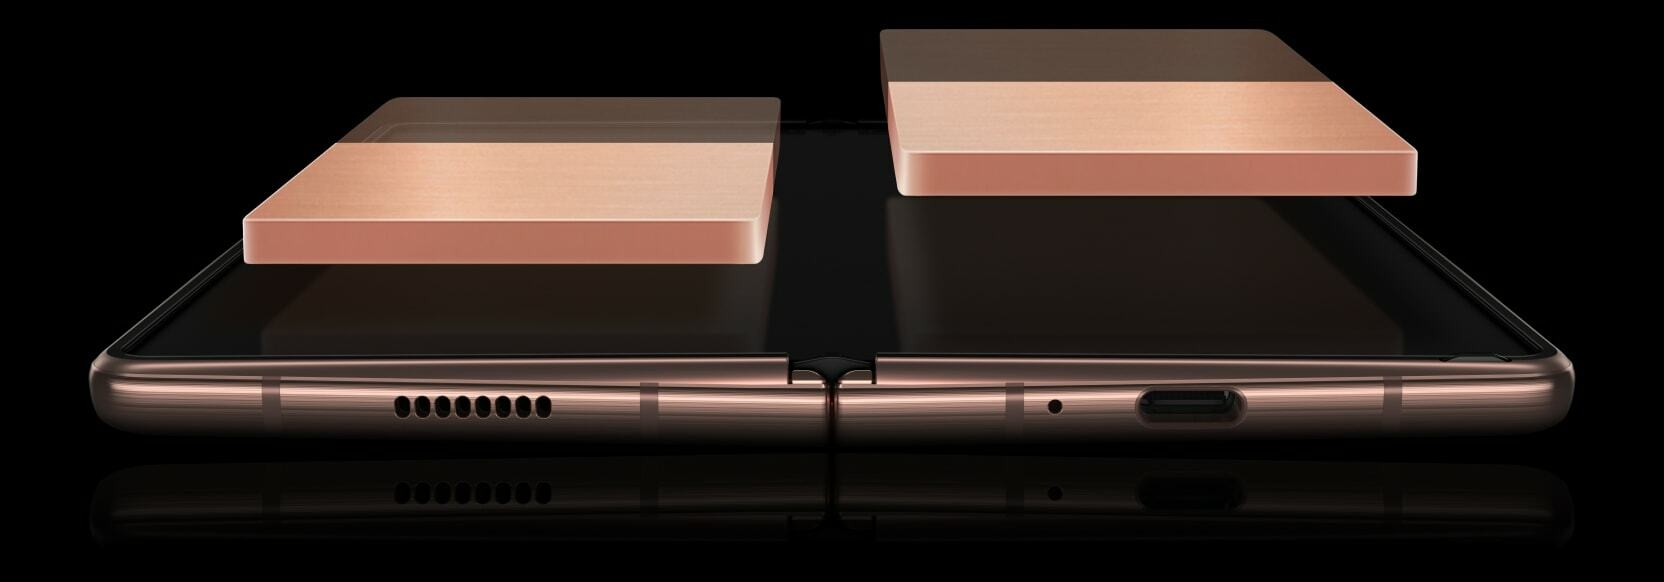 Galaxy Z Fold2 in Mystic Bronze, unfolded and laying faceup. The two sides of the All-day Dual Battery appear floating over the Main Screen, and the color reduces to demonstrate how the dual battery works as one to equally drain power.